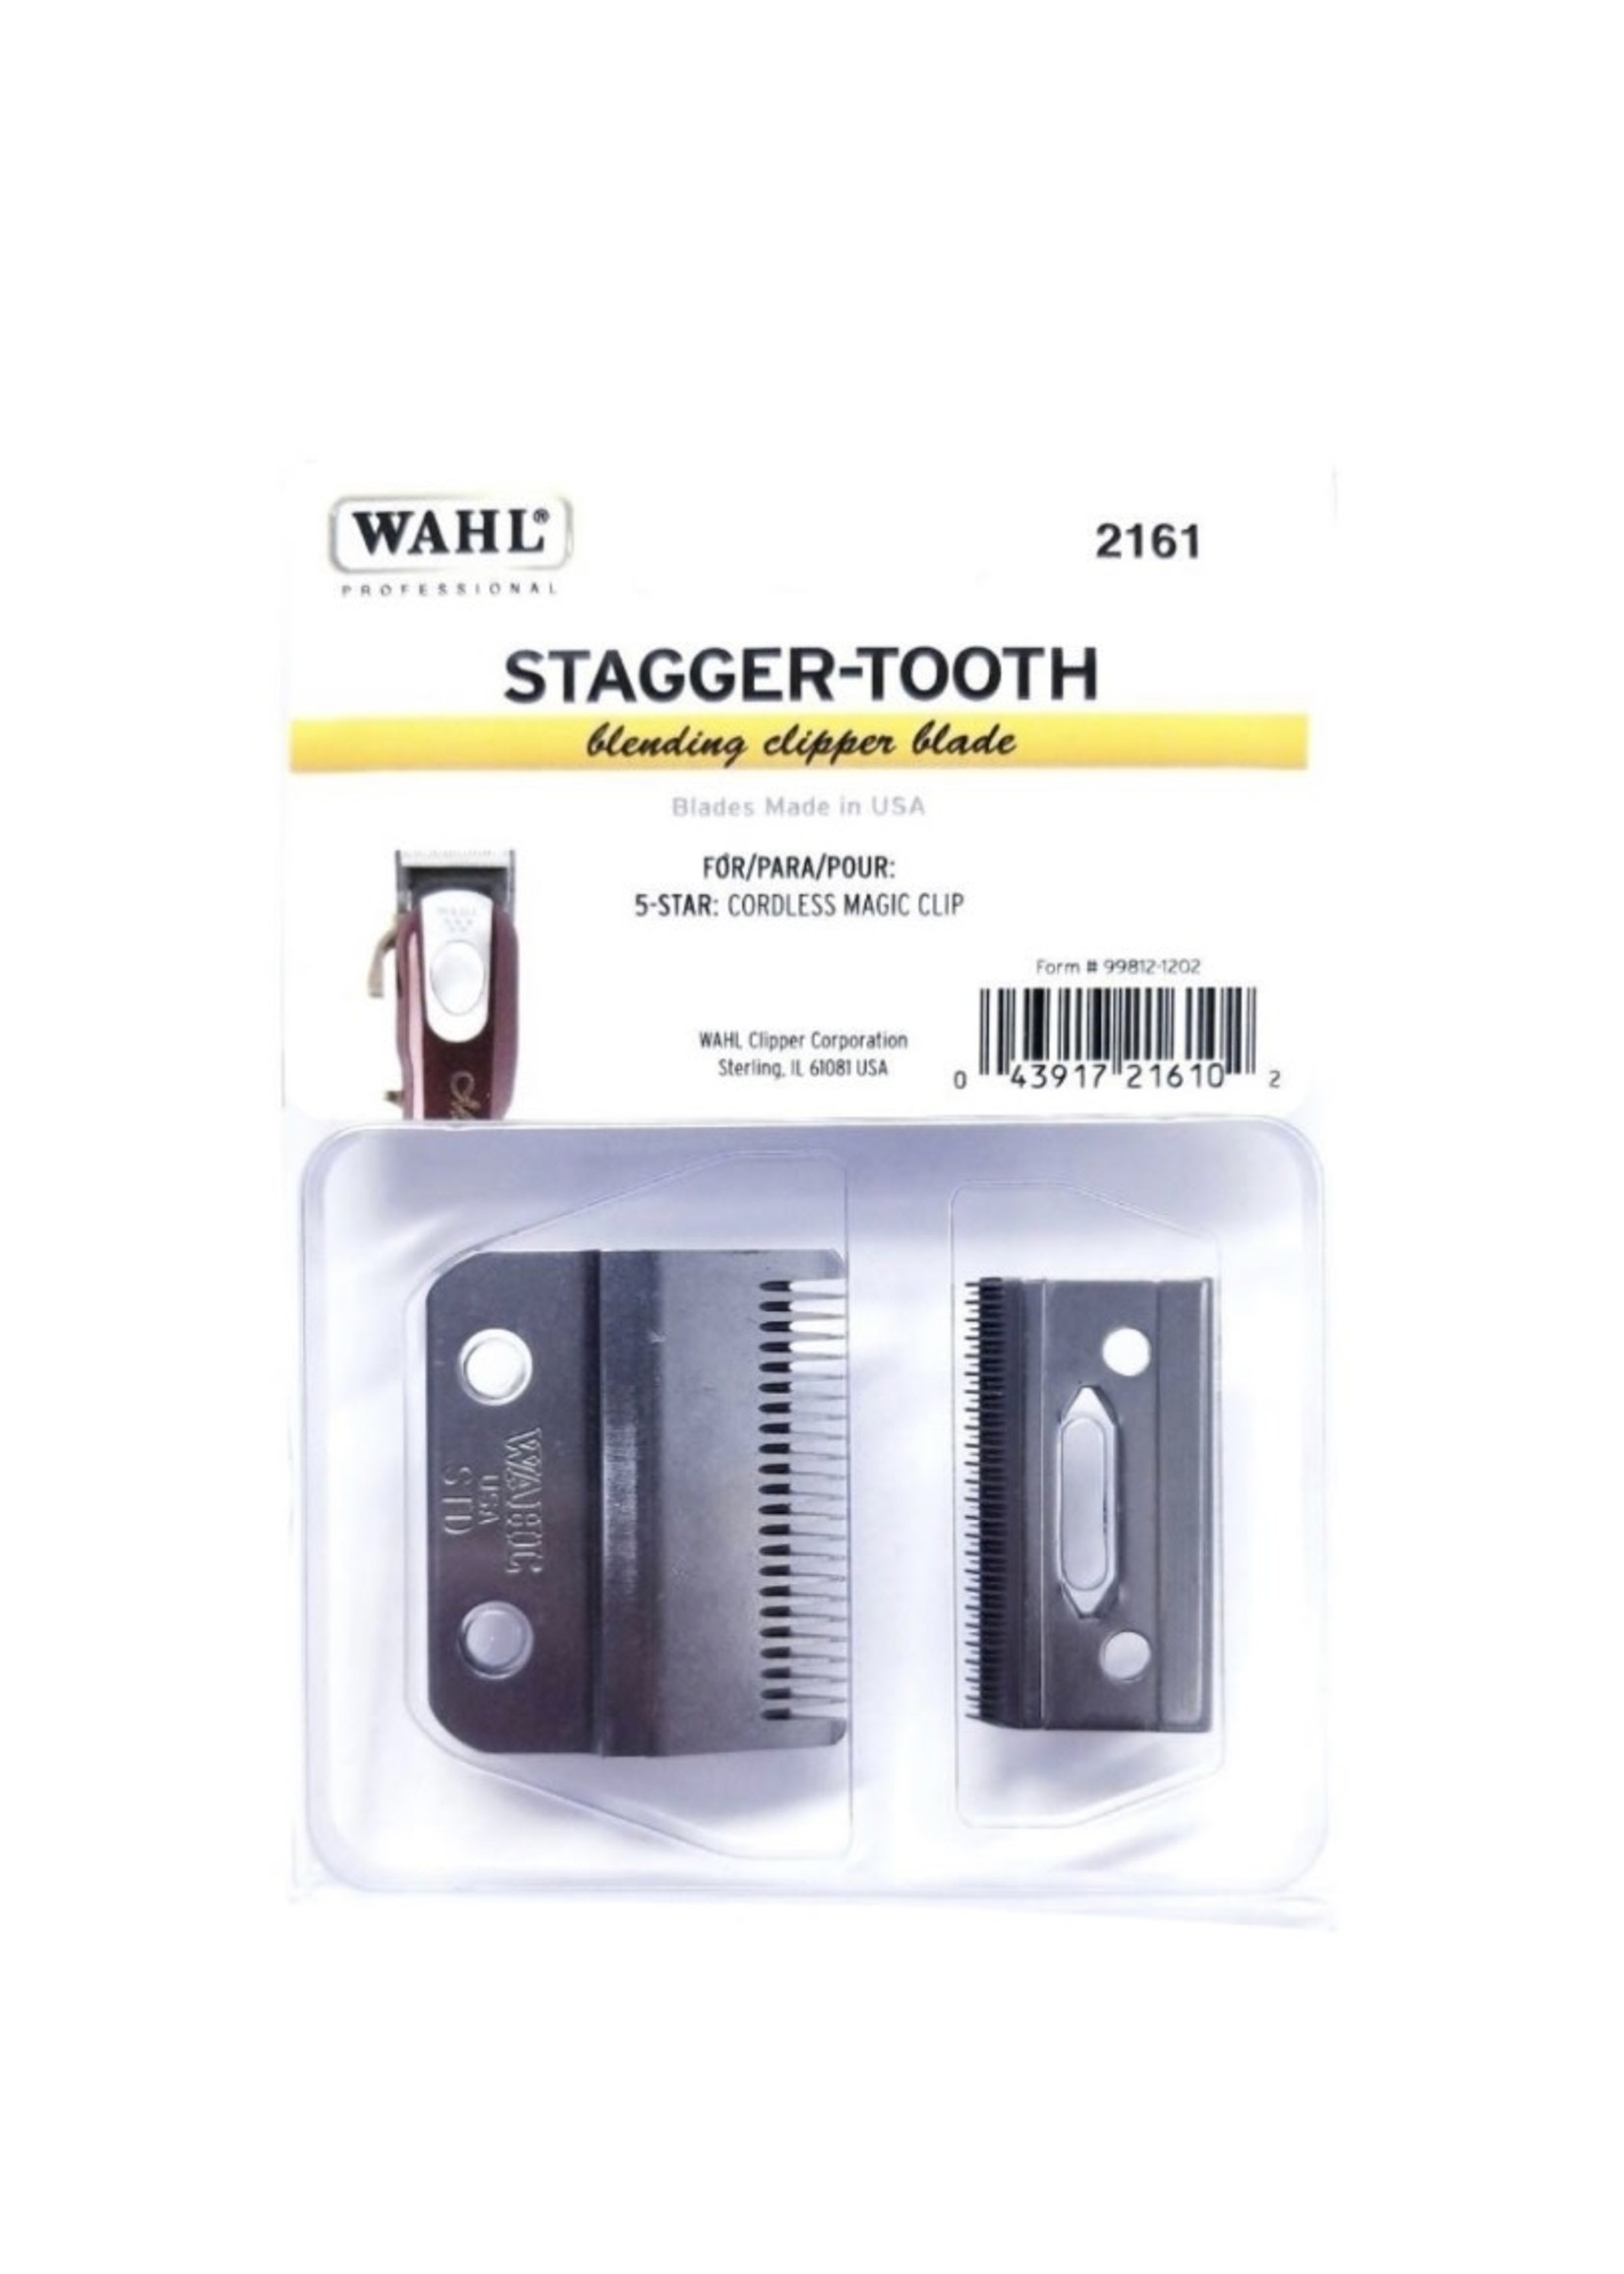 Wahl Wahl Magic Clip- Stagger Tooth Blade- #2161